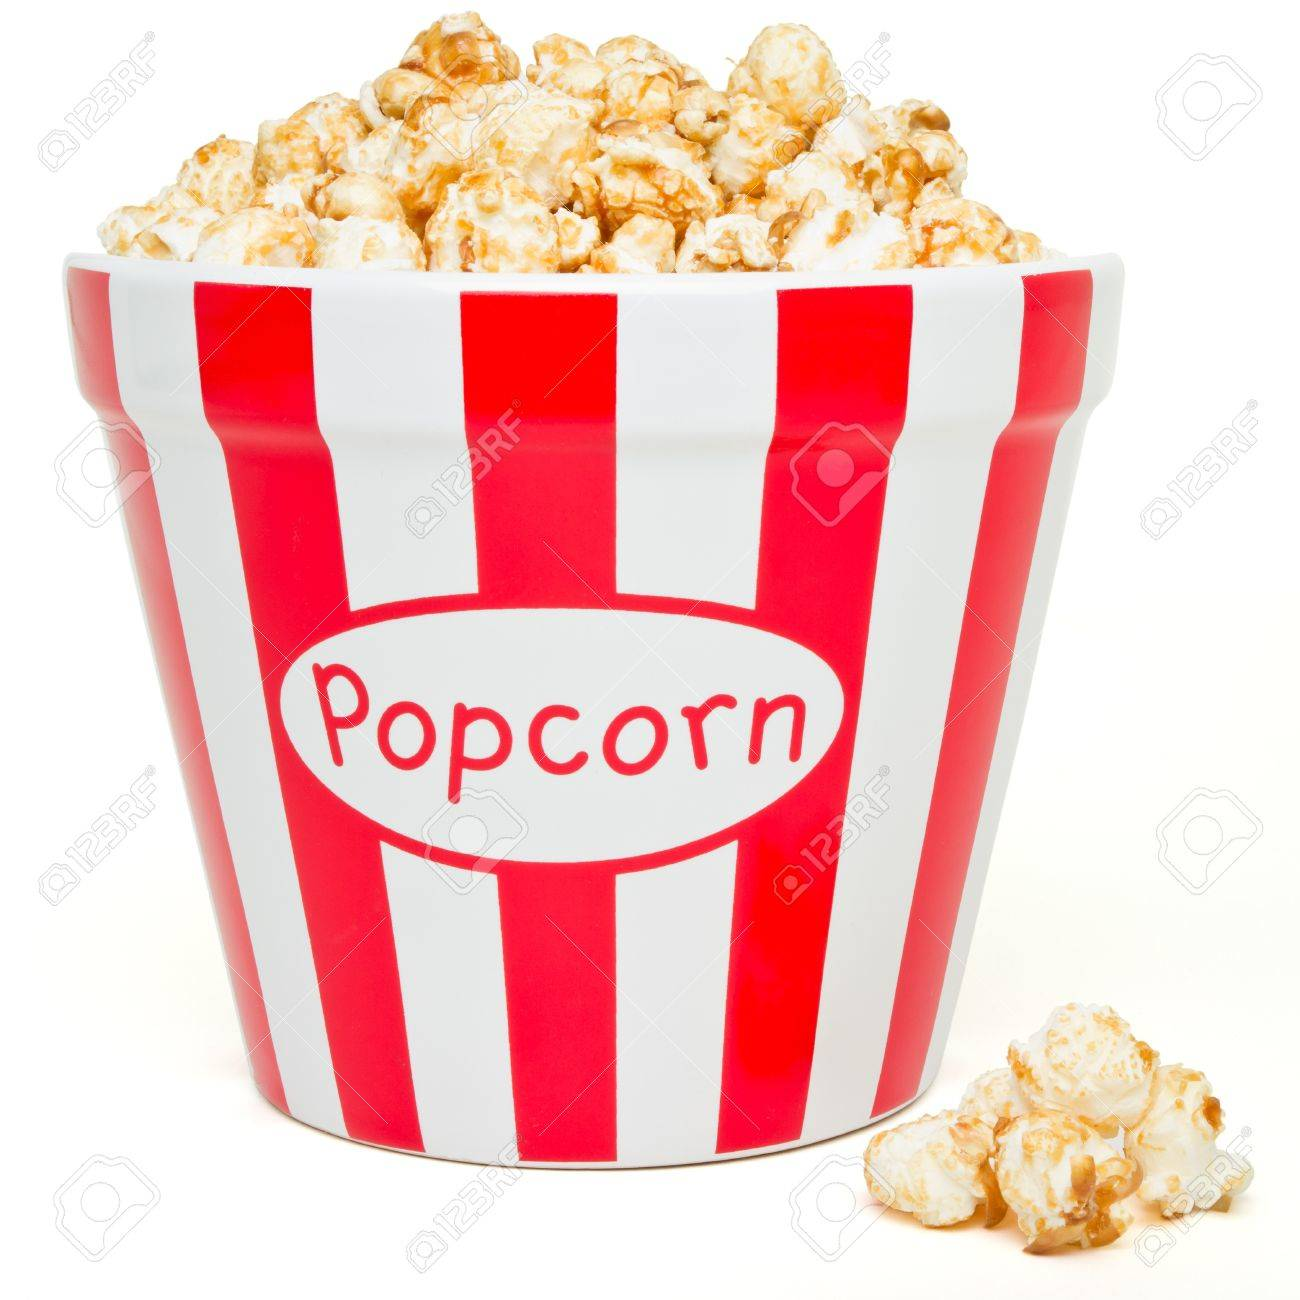 red and white bowl of popcorn from low perspective isolated on white. Stock Photo - 8479678